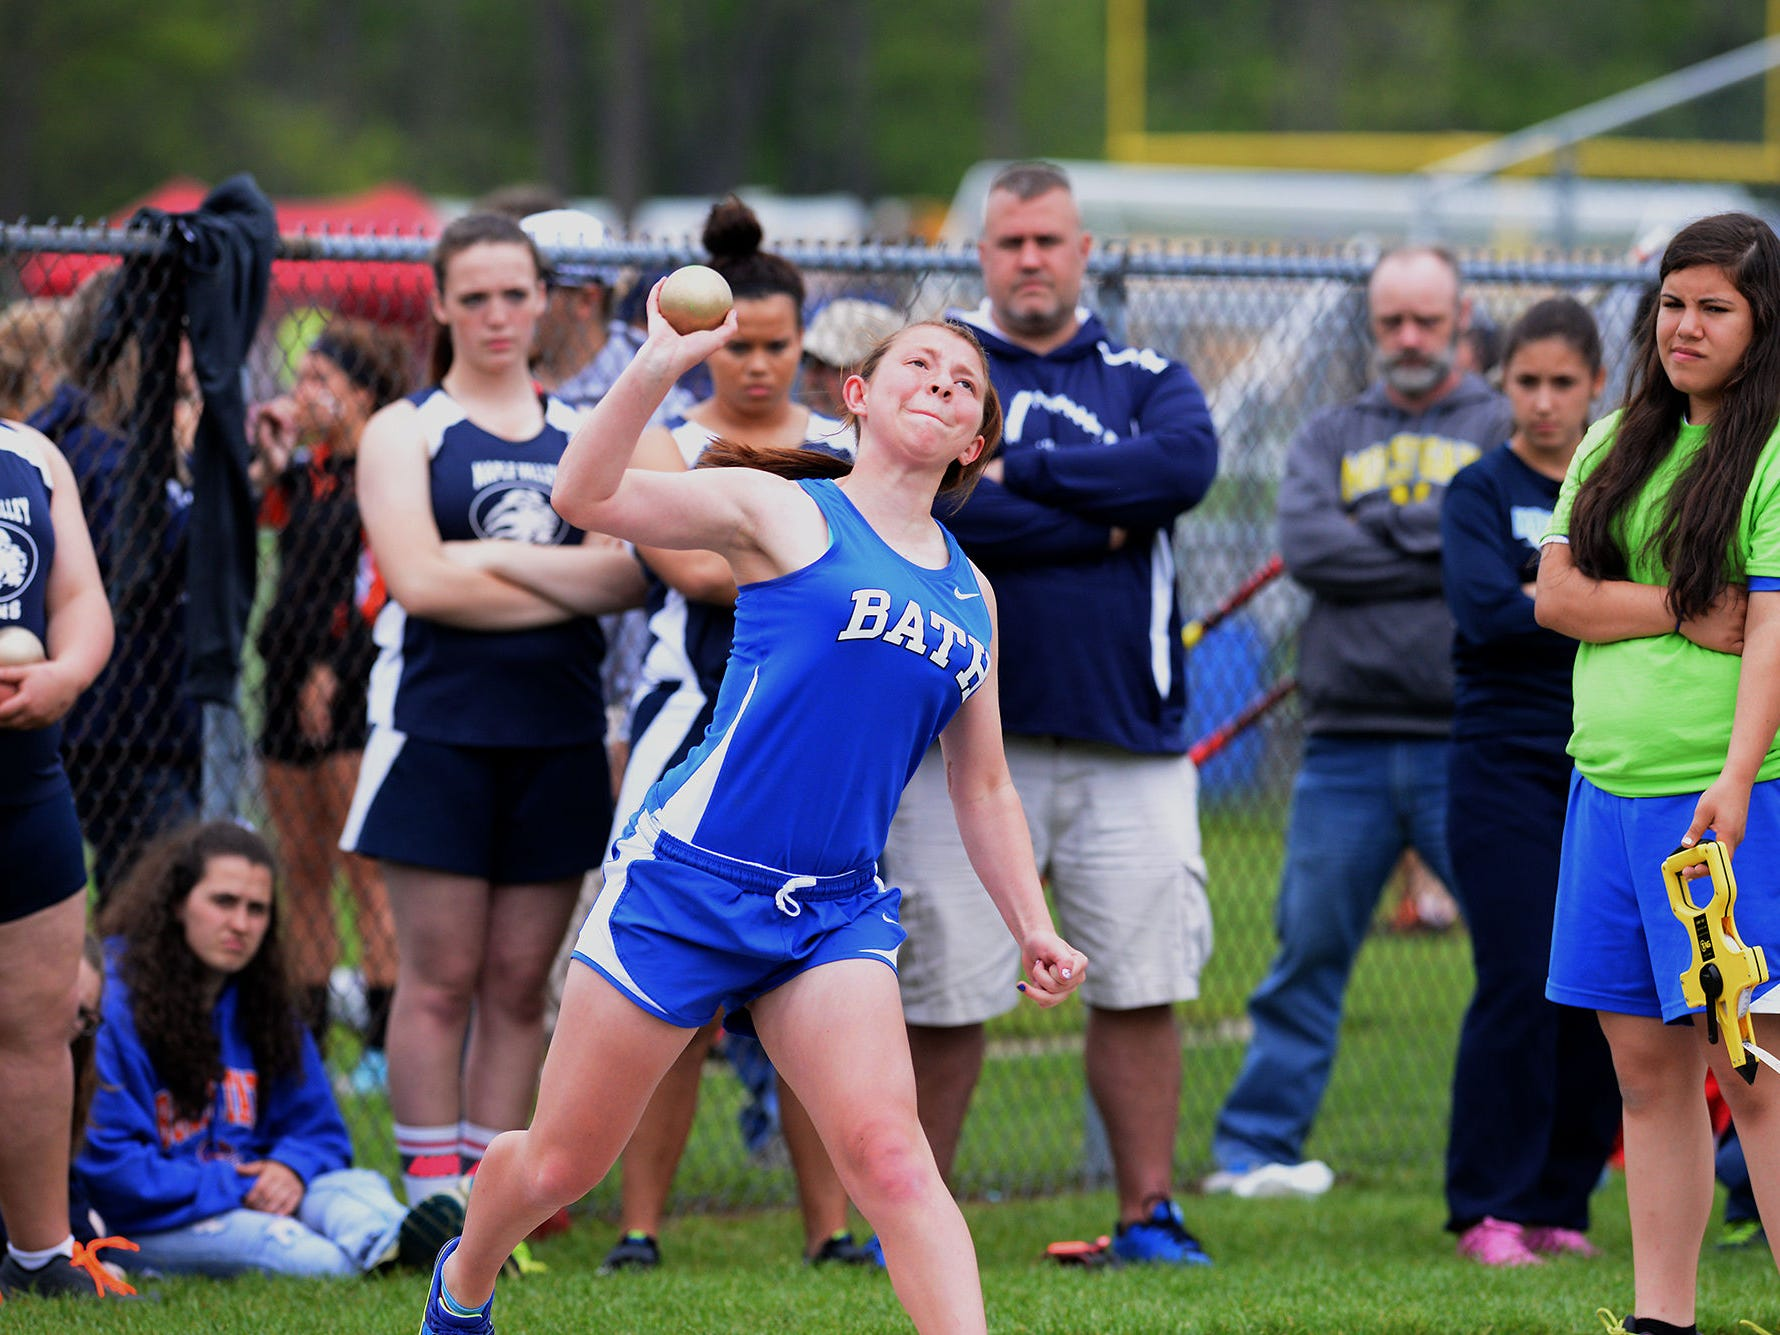 Bath's Hannah Erbskorn attempts a throw during her heat of the shot put Friday, May 15, 2015, at the Division 3 Regional track meet at Bath High School.